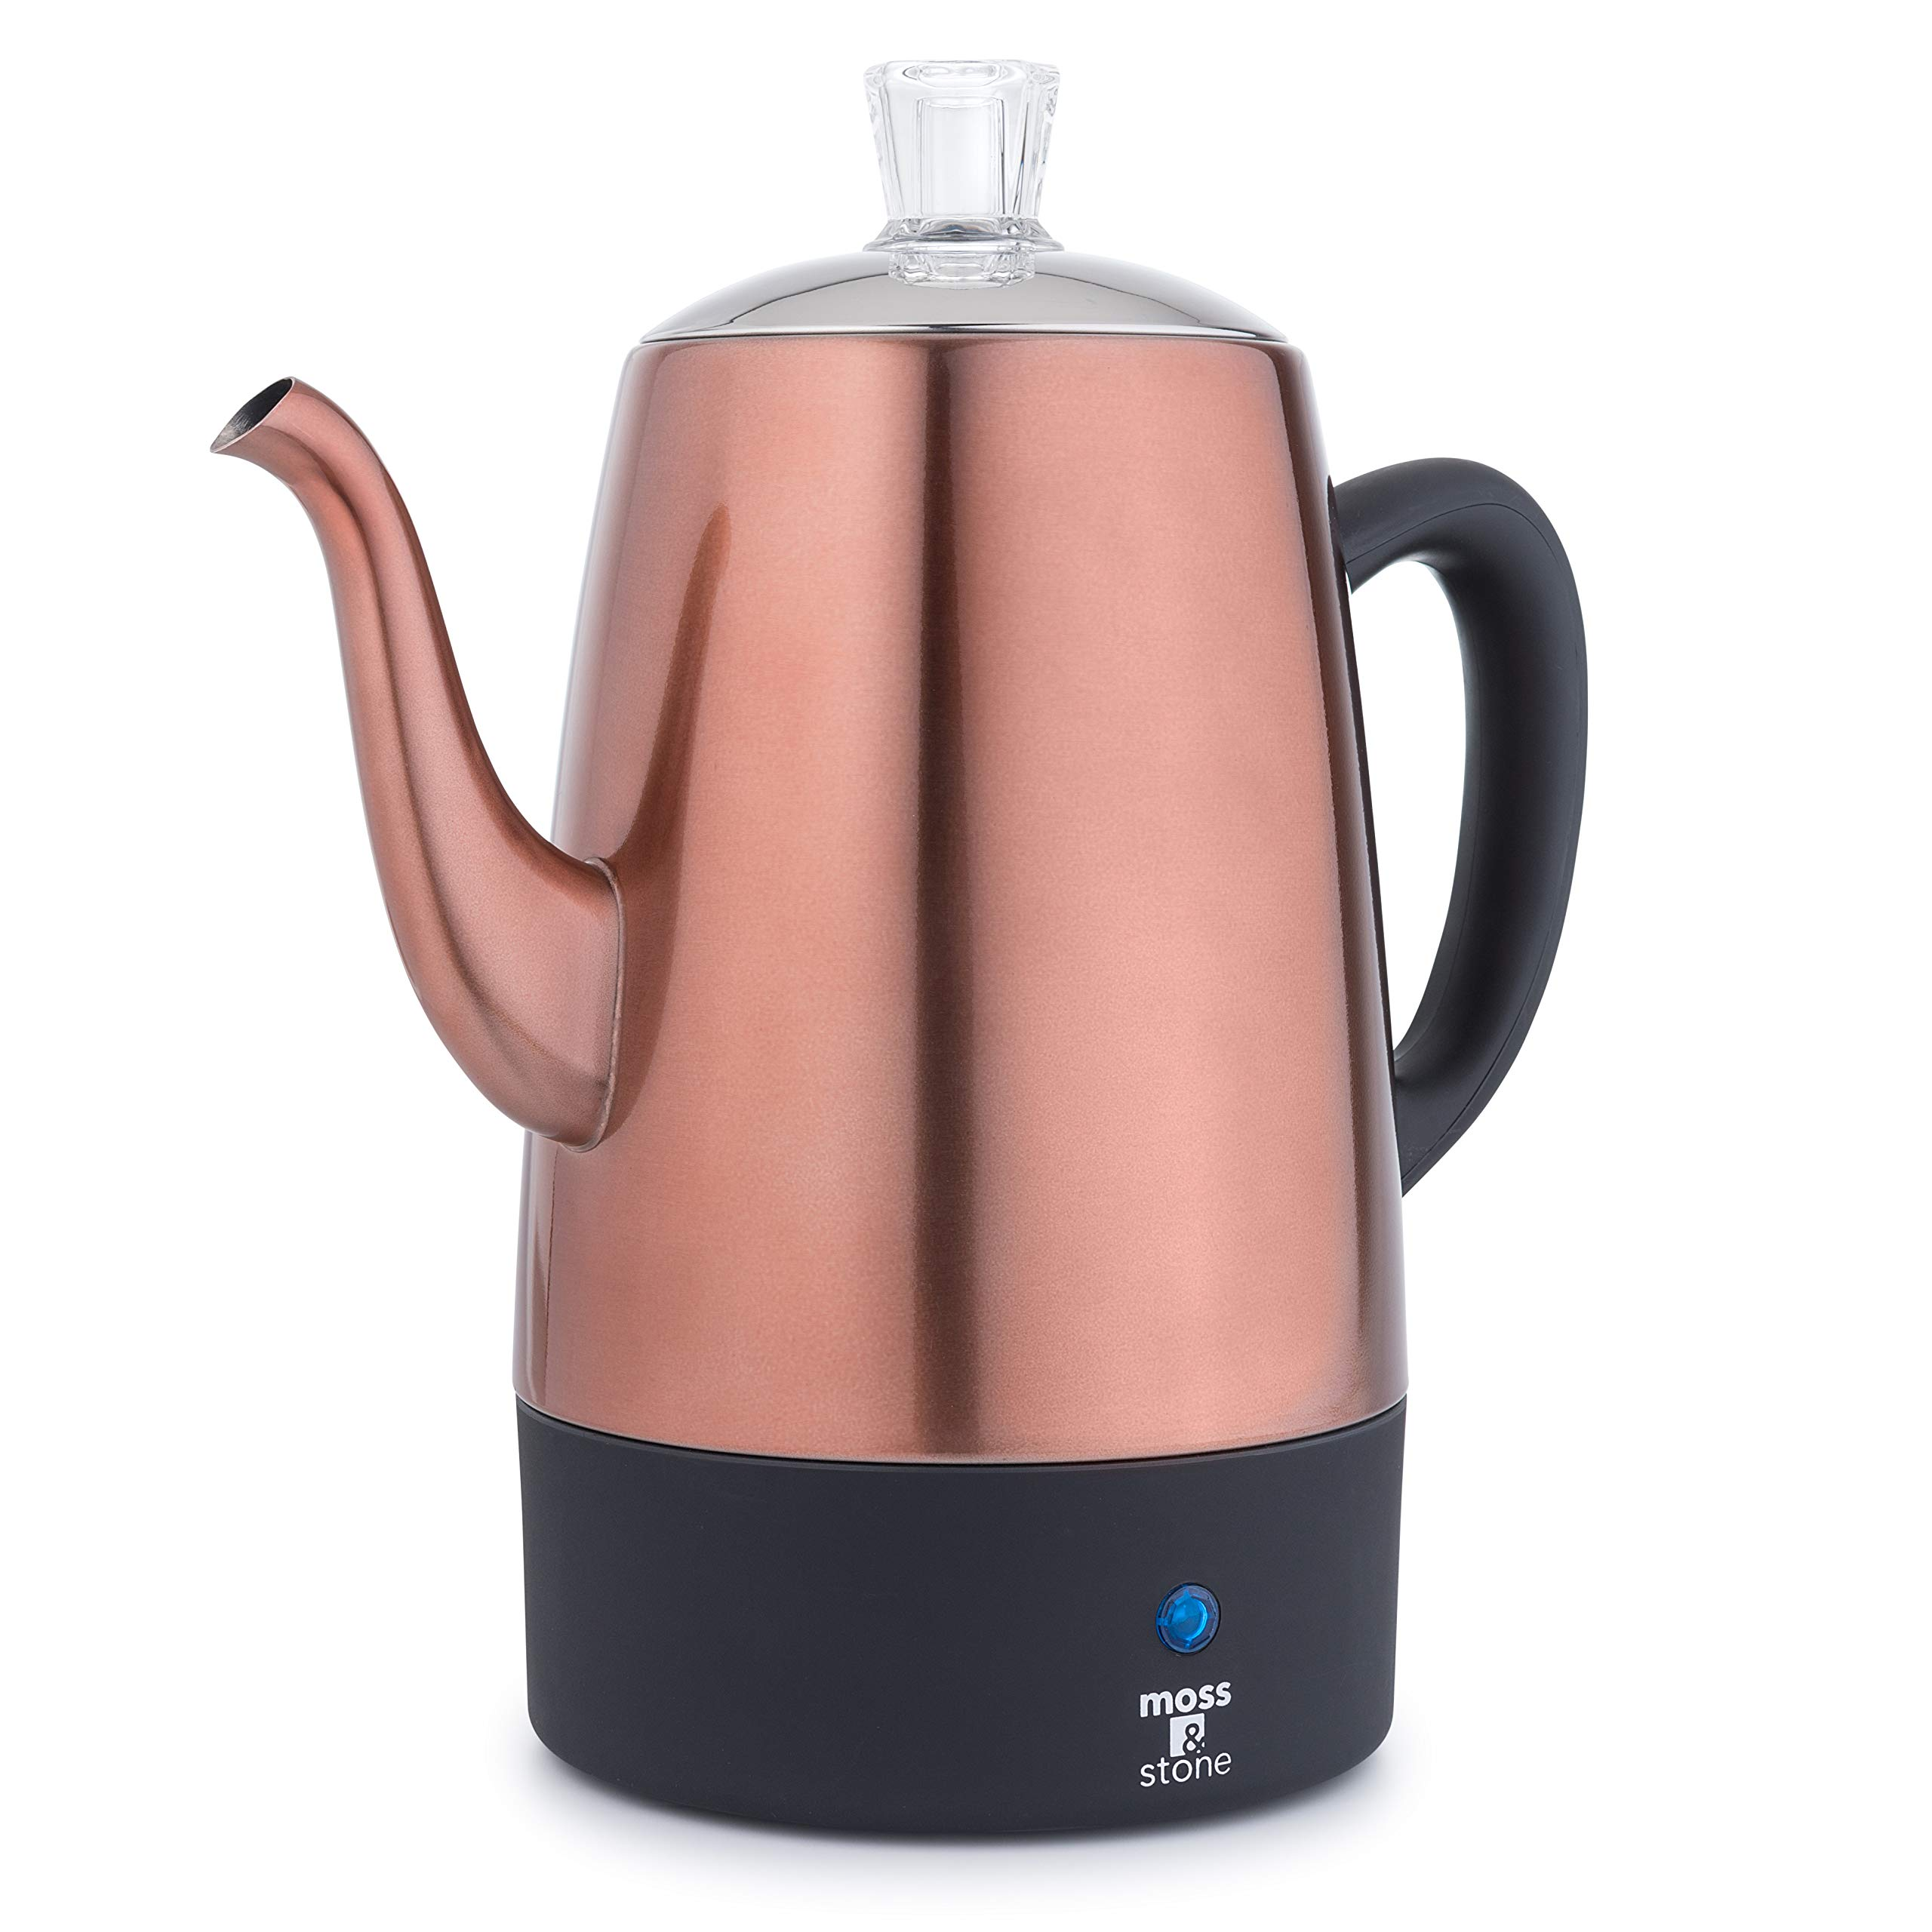 Moss & Stone Electric Coffee Percolator | Copper Body With Stainless Steel Lids Coffee Maker | Percolator Electric Pot - 10 cups by Moss & Stone